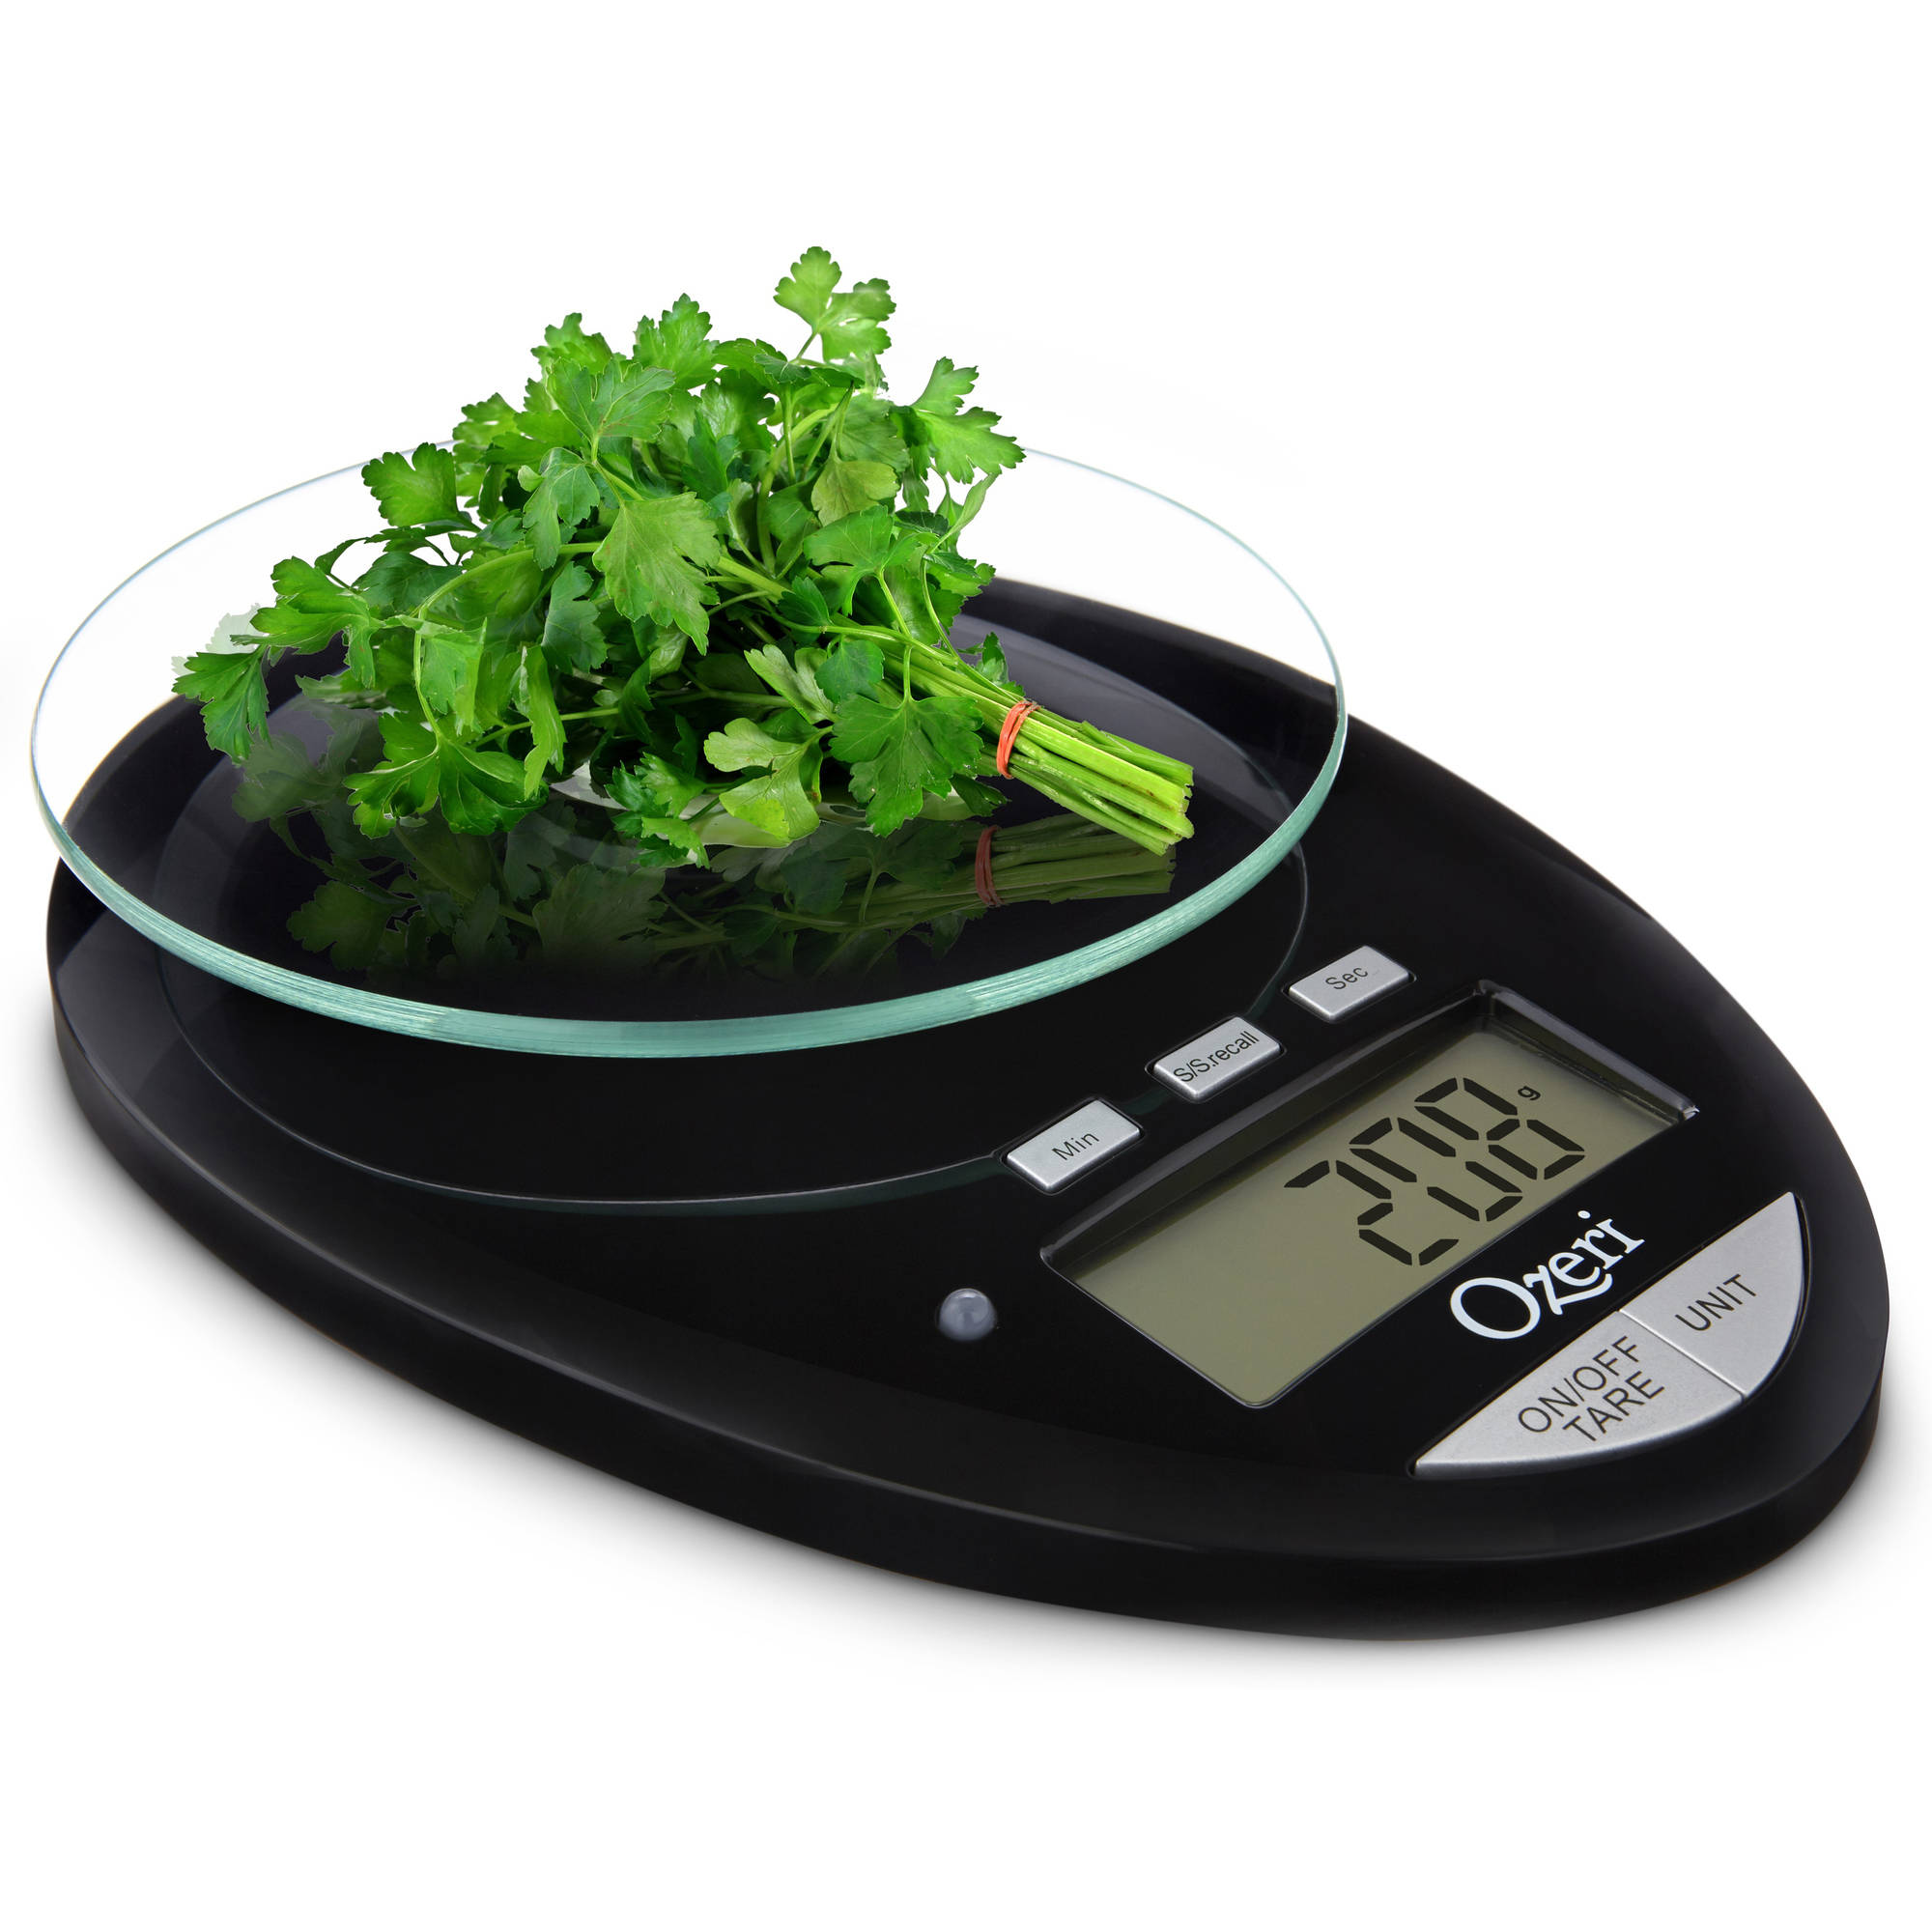 Ozeri Pro II Digital Kitchen Scale with Removable Glass Platform and Countdown Kitchen Timer